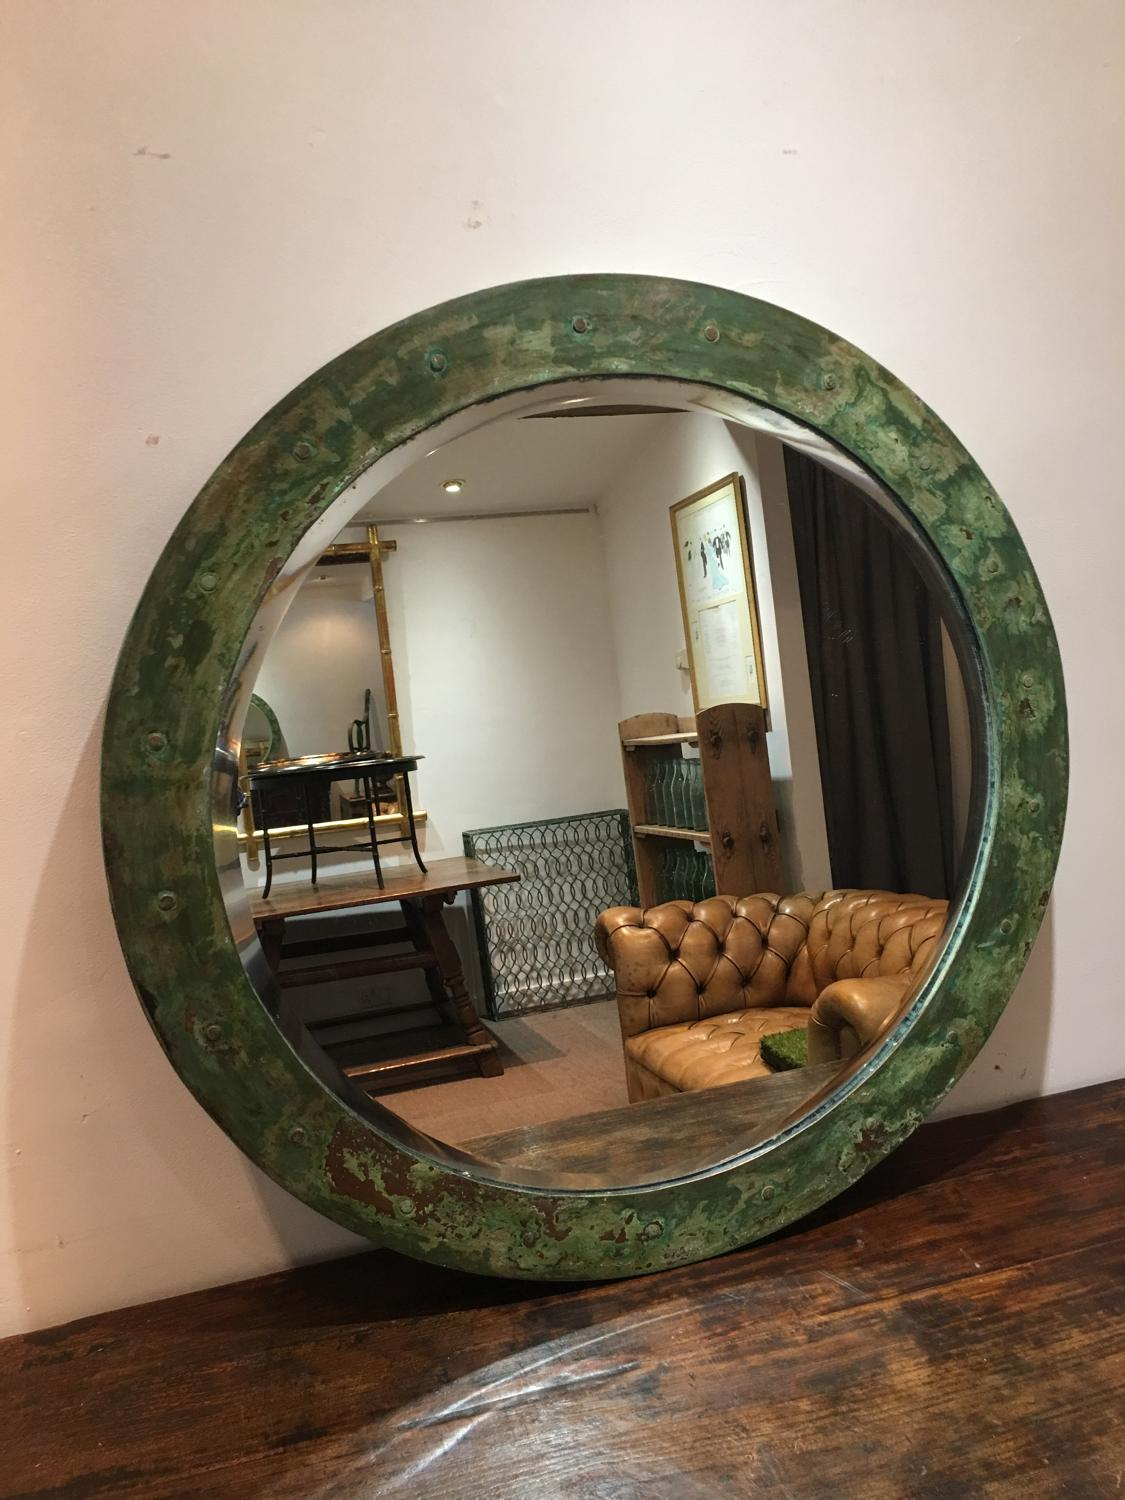 A Mid 20thC copper bound circular mirror